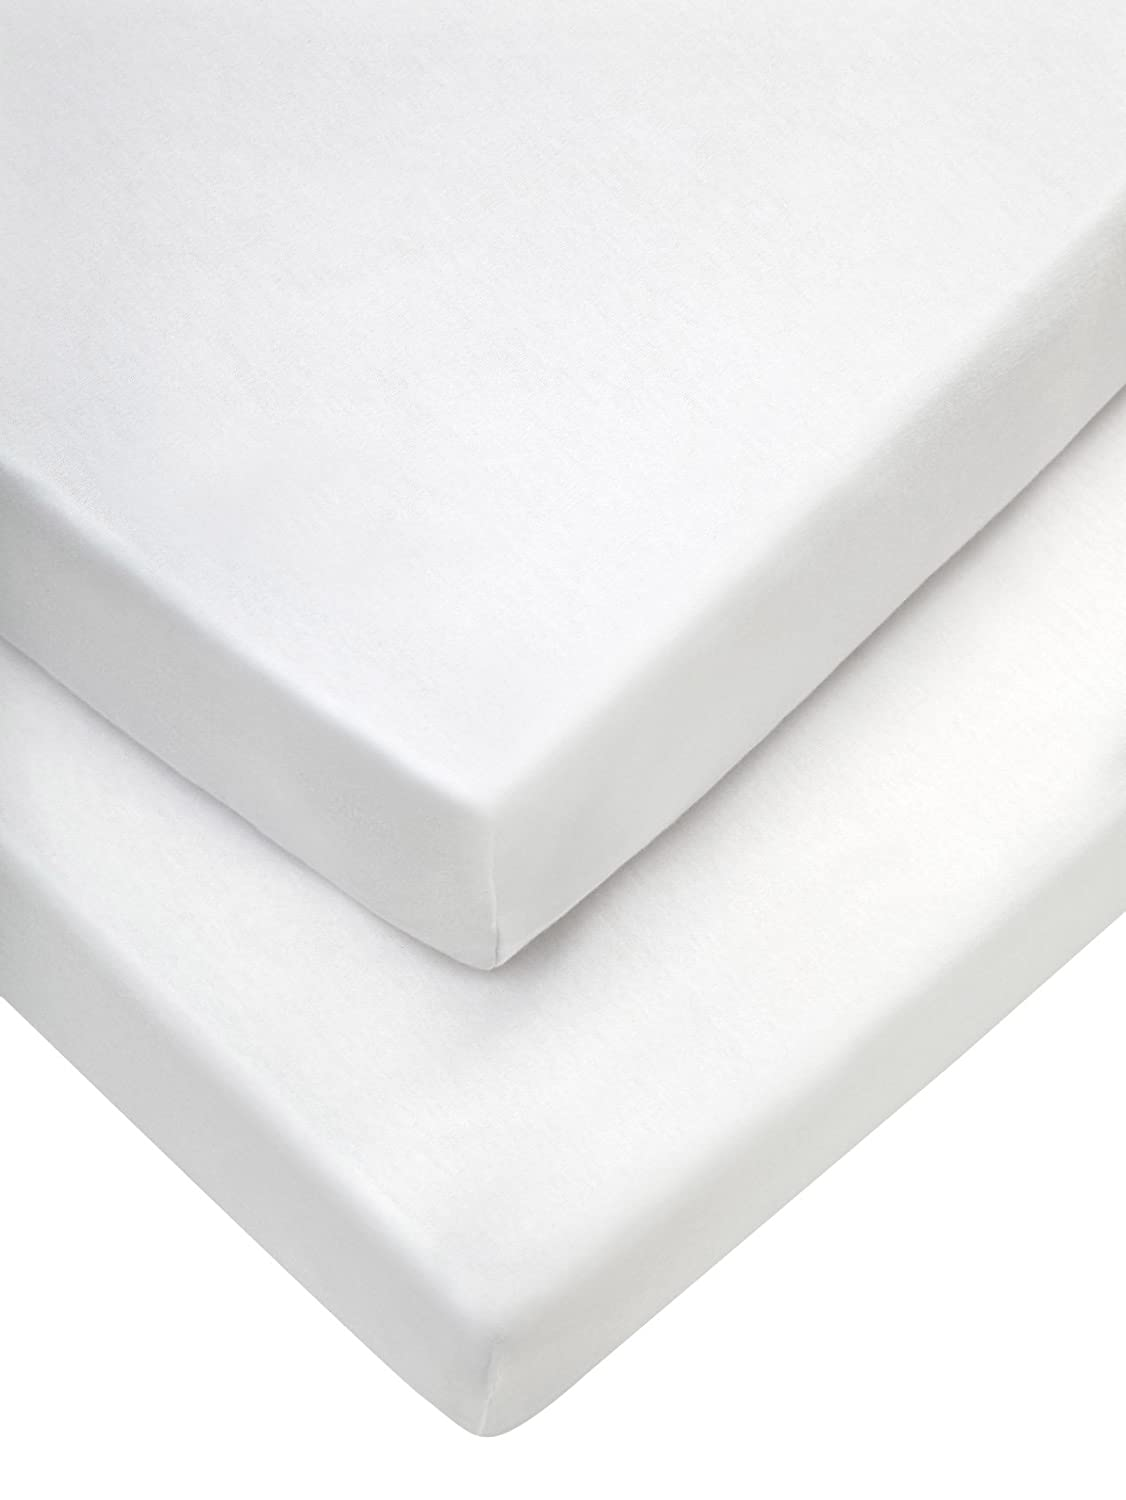 Mamas & Papas Pram Fitted Sheets (35 x 78 cm, White, Pack of 2), Pushchair Accessory 776502702